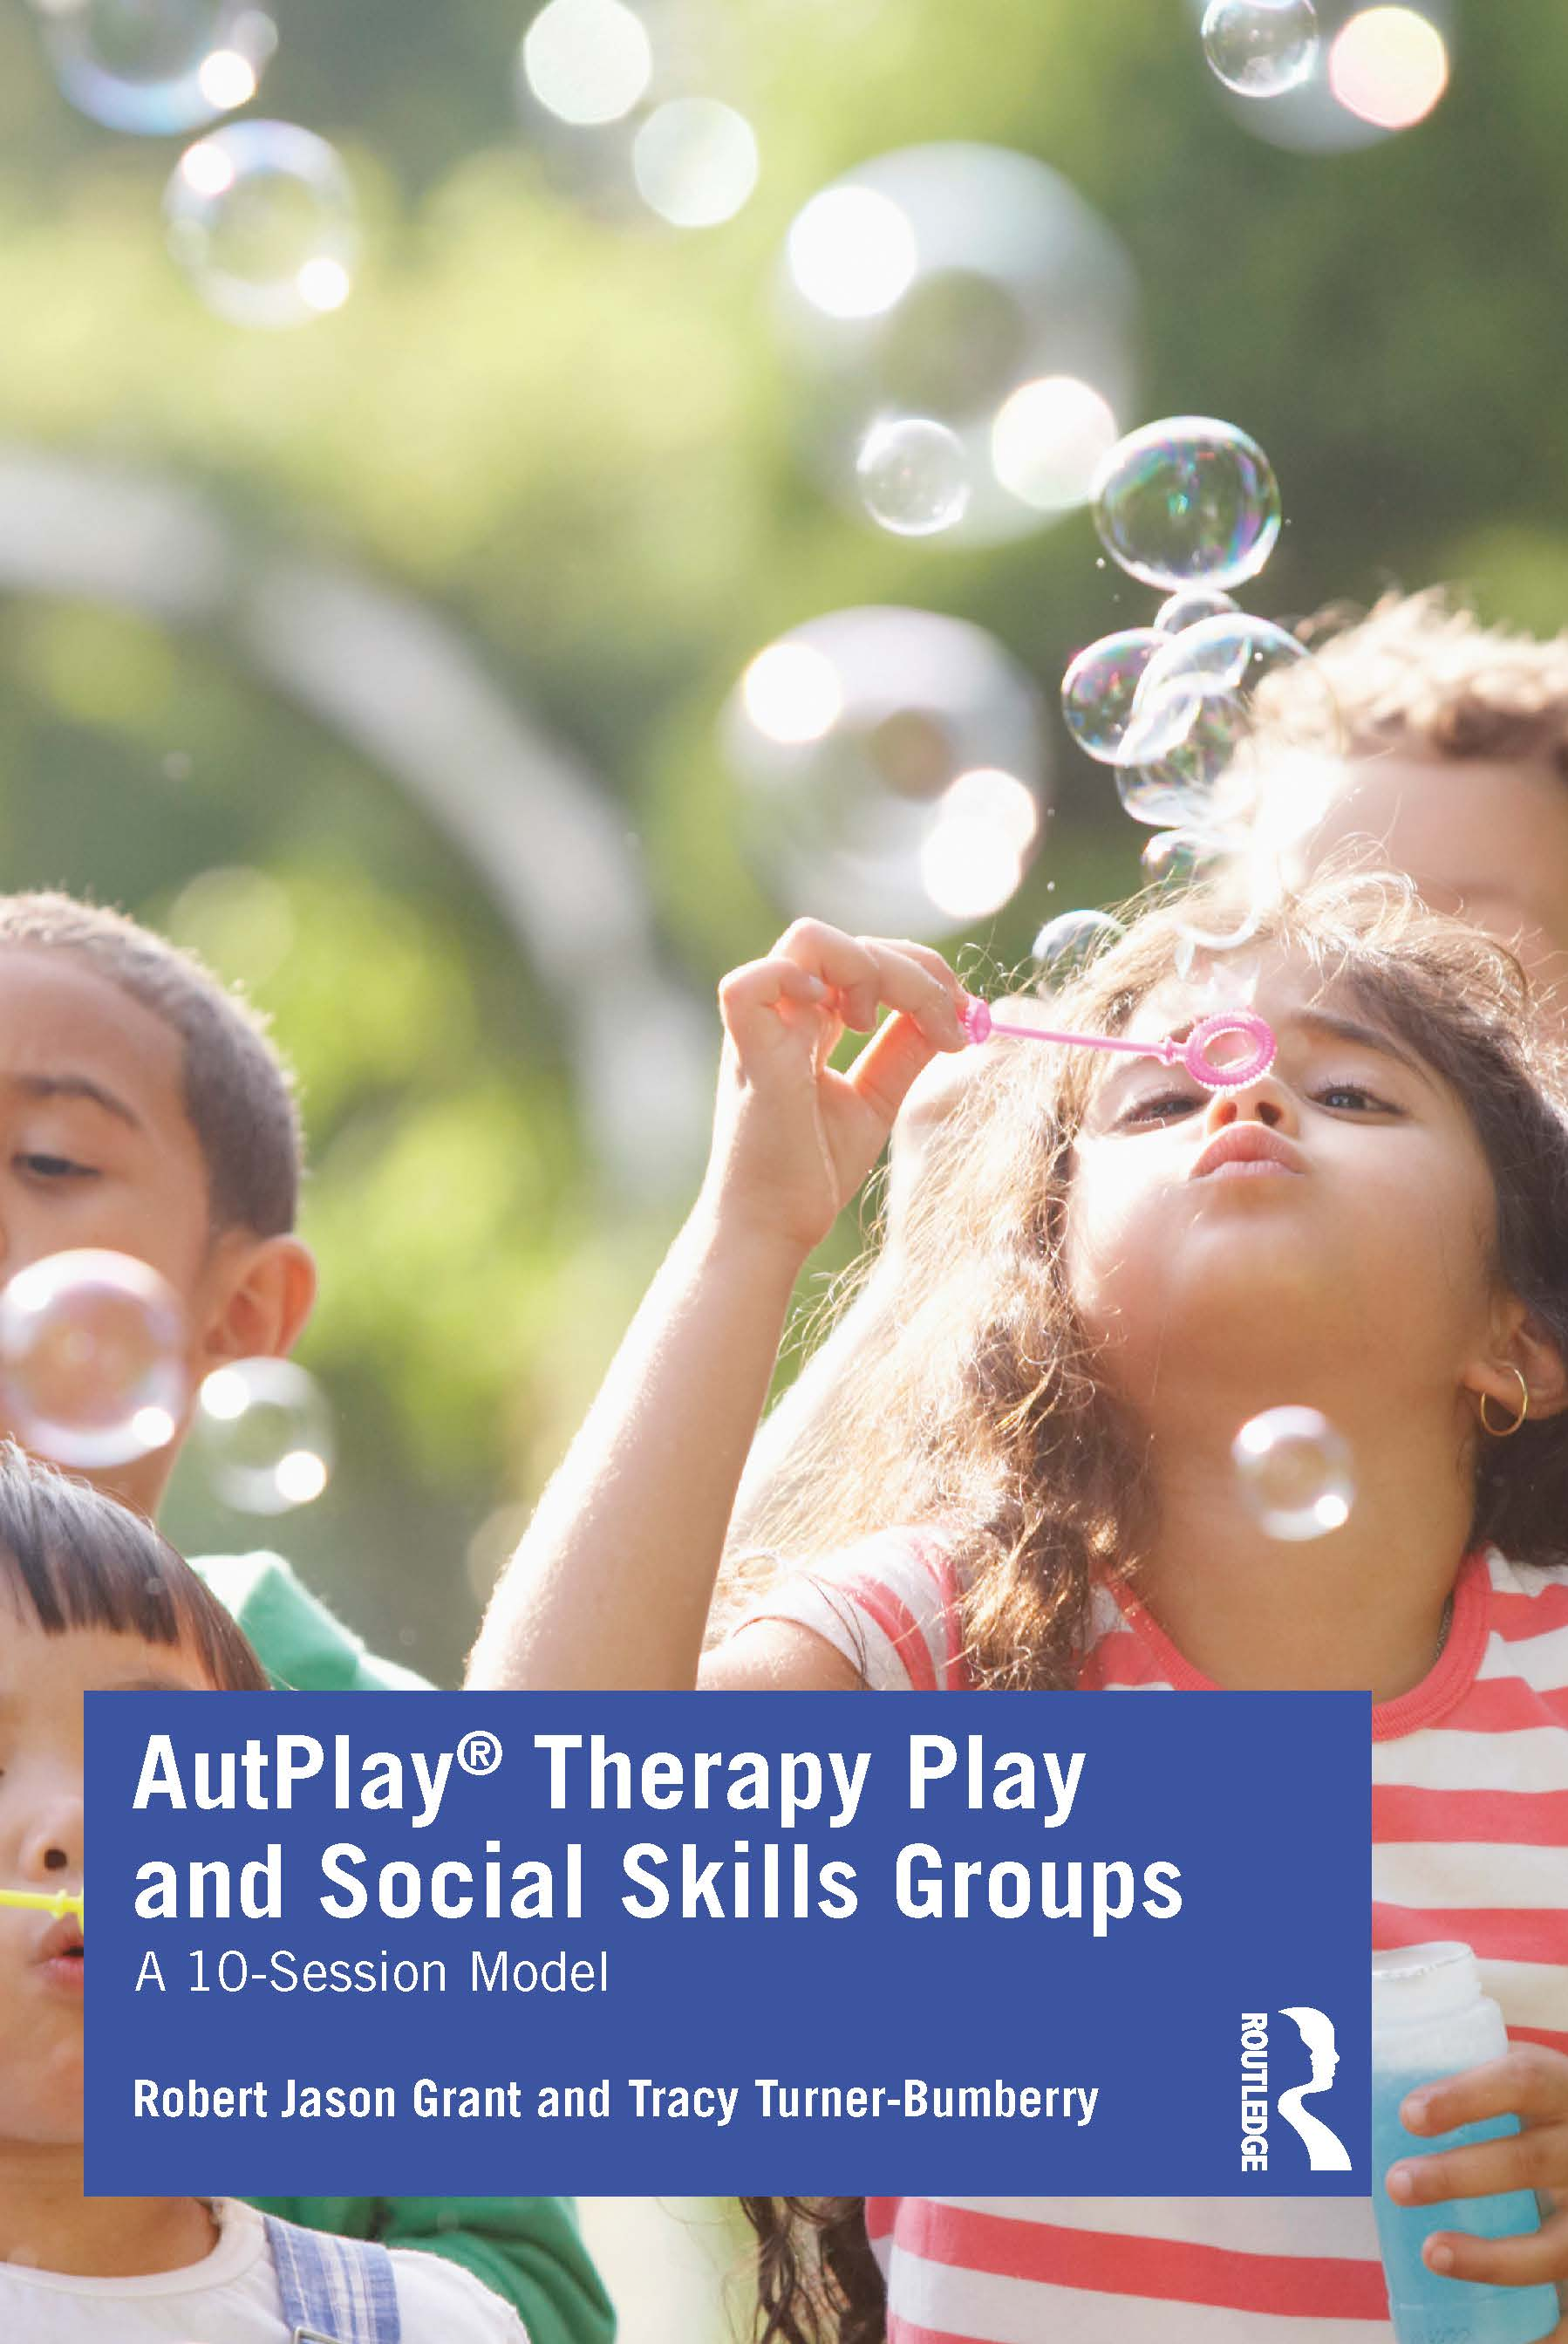 AutPlay® Therapy Play and Social Skills Groups